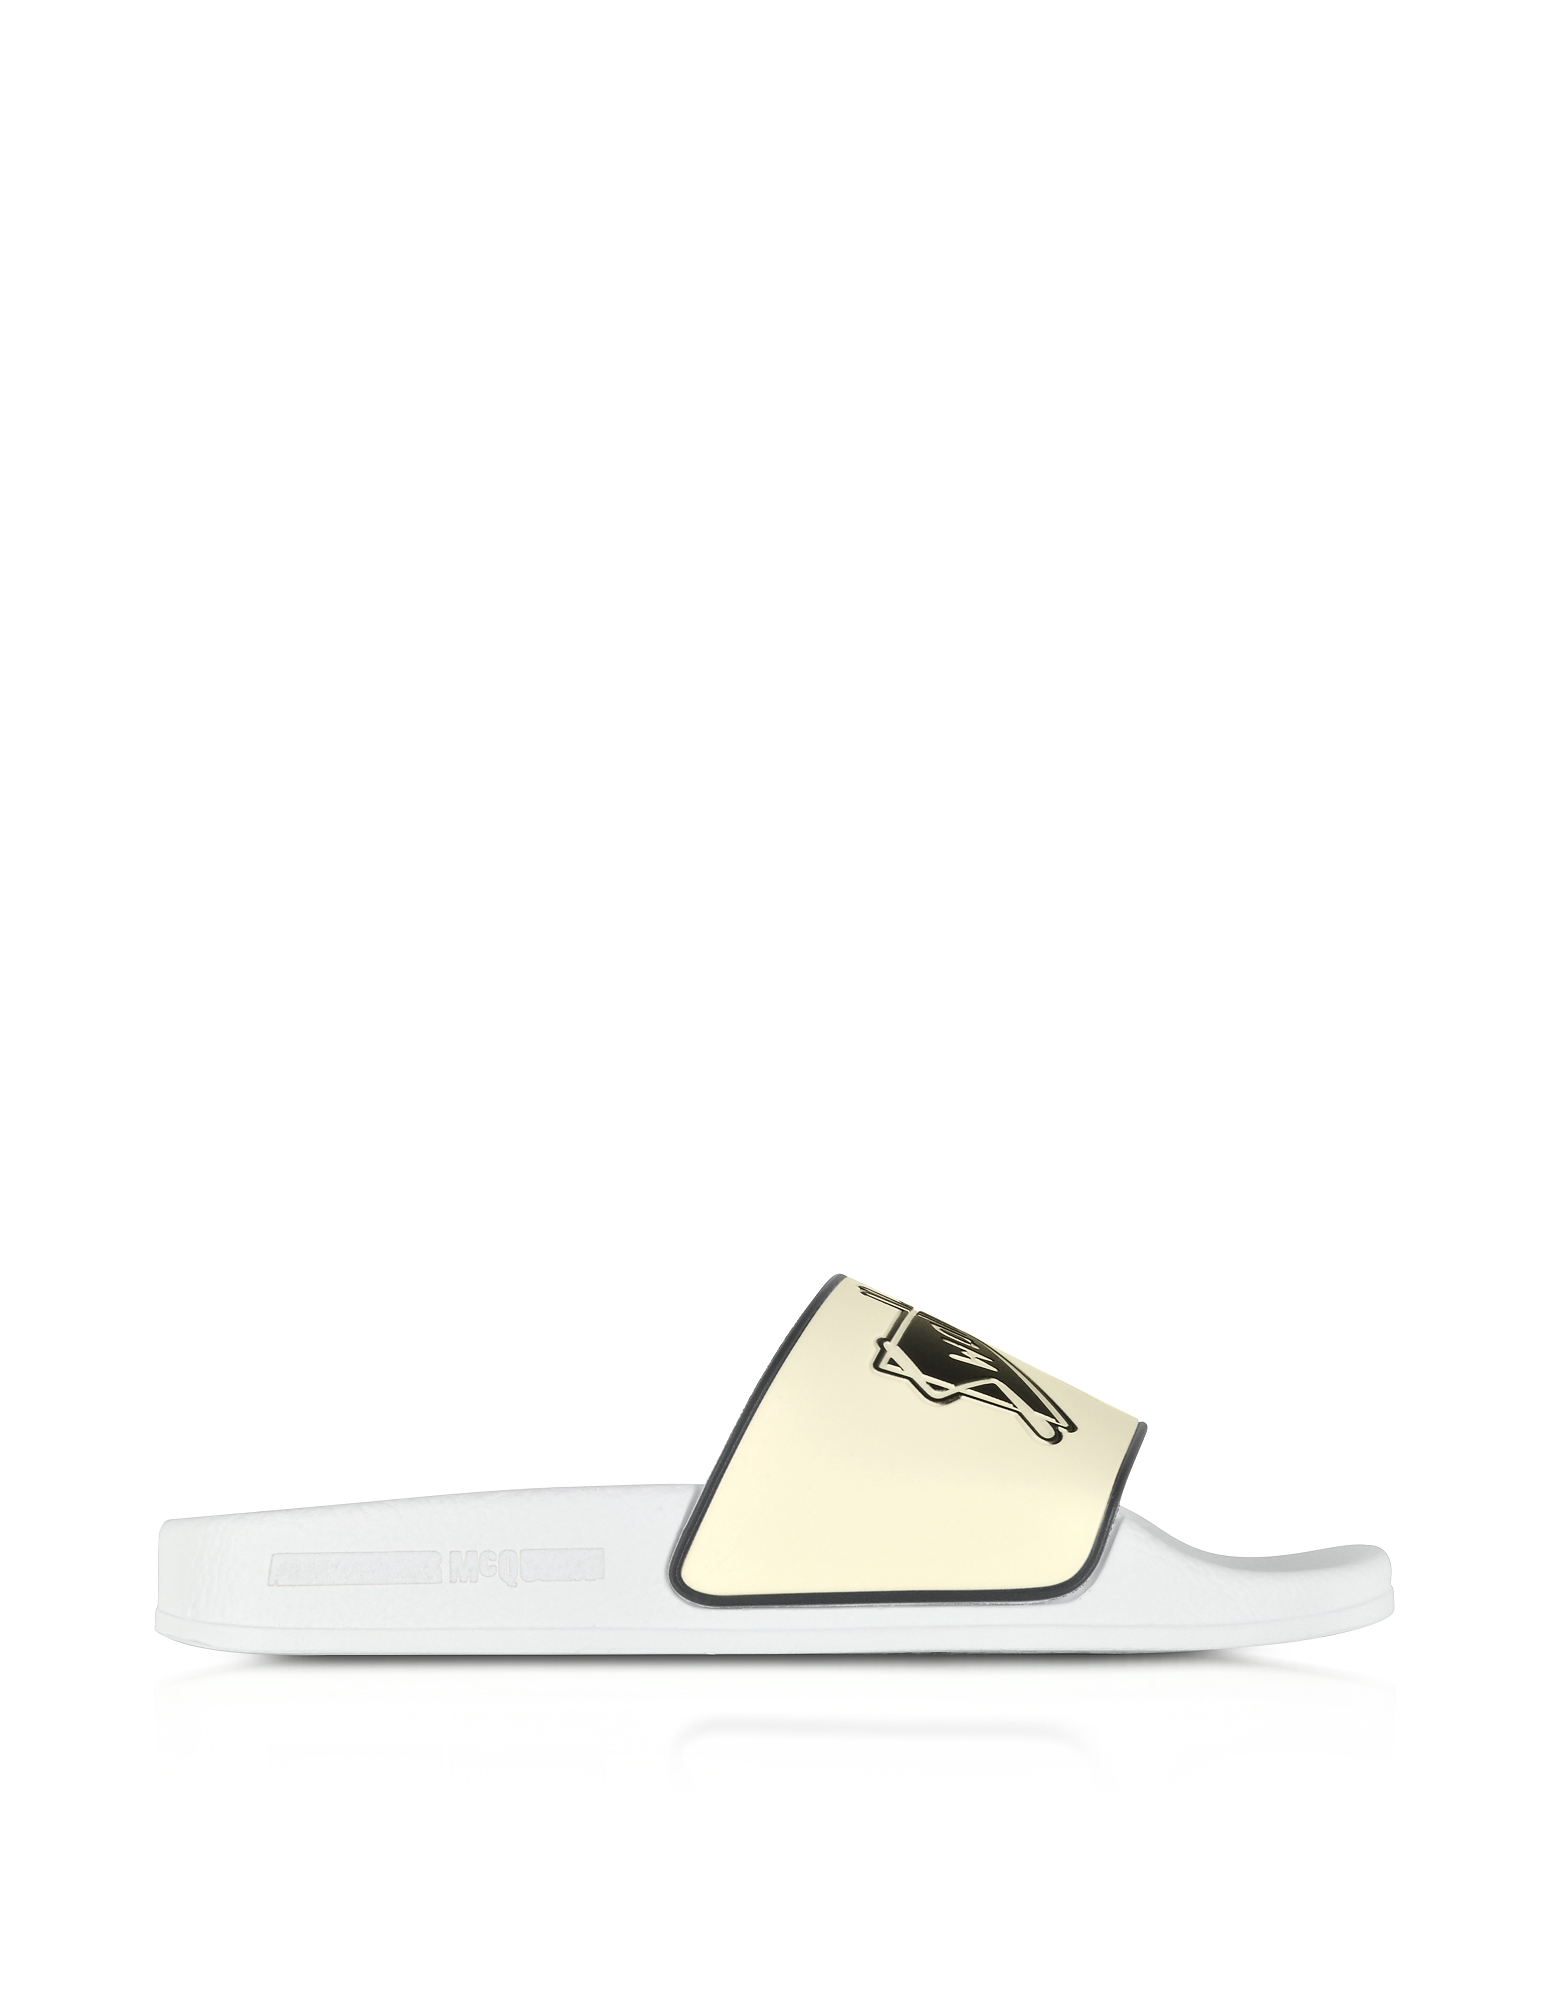 McQ Alexander McQueen Designer Shoes, White Swallow Slide Sandals